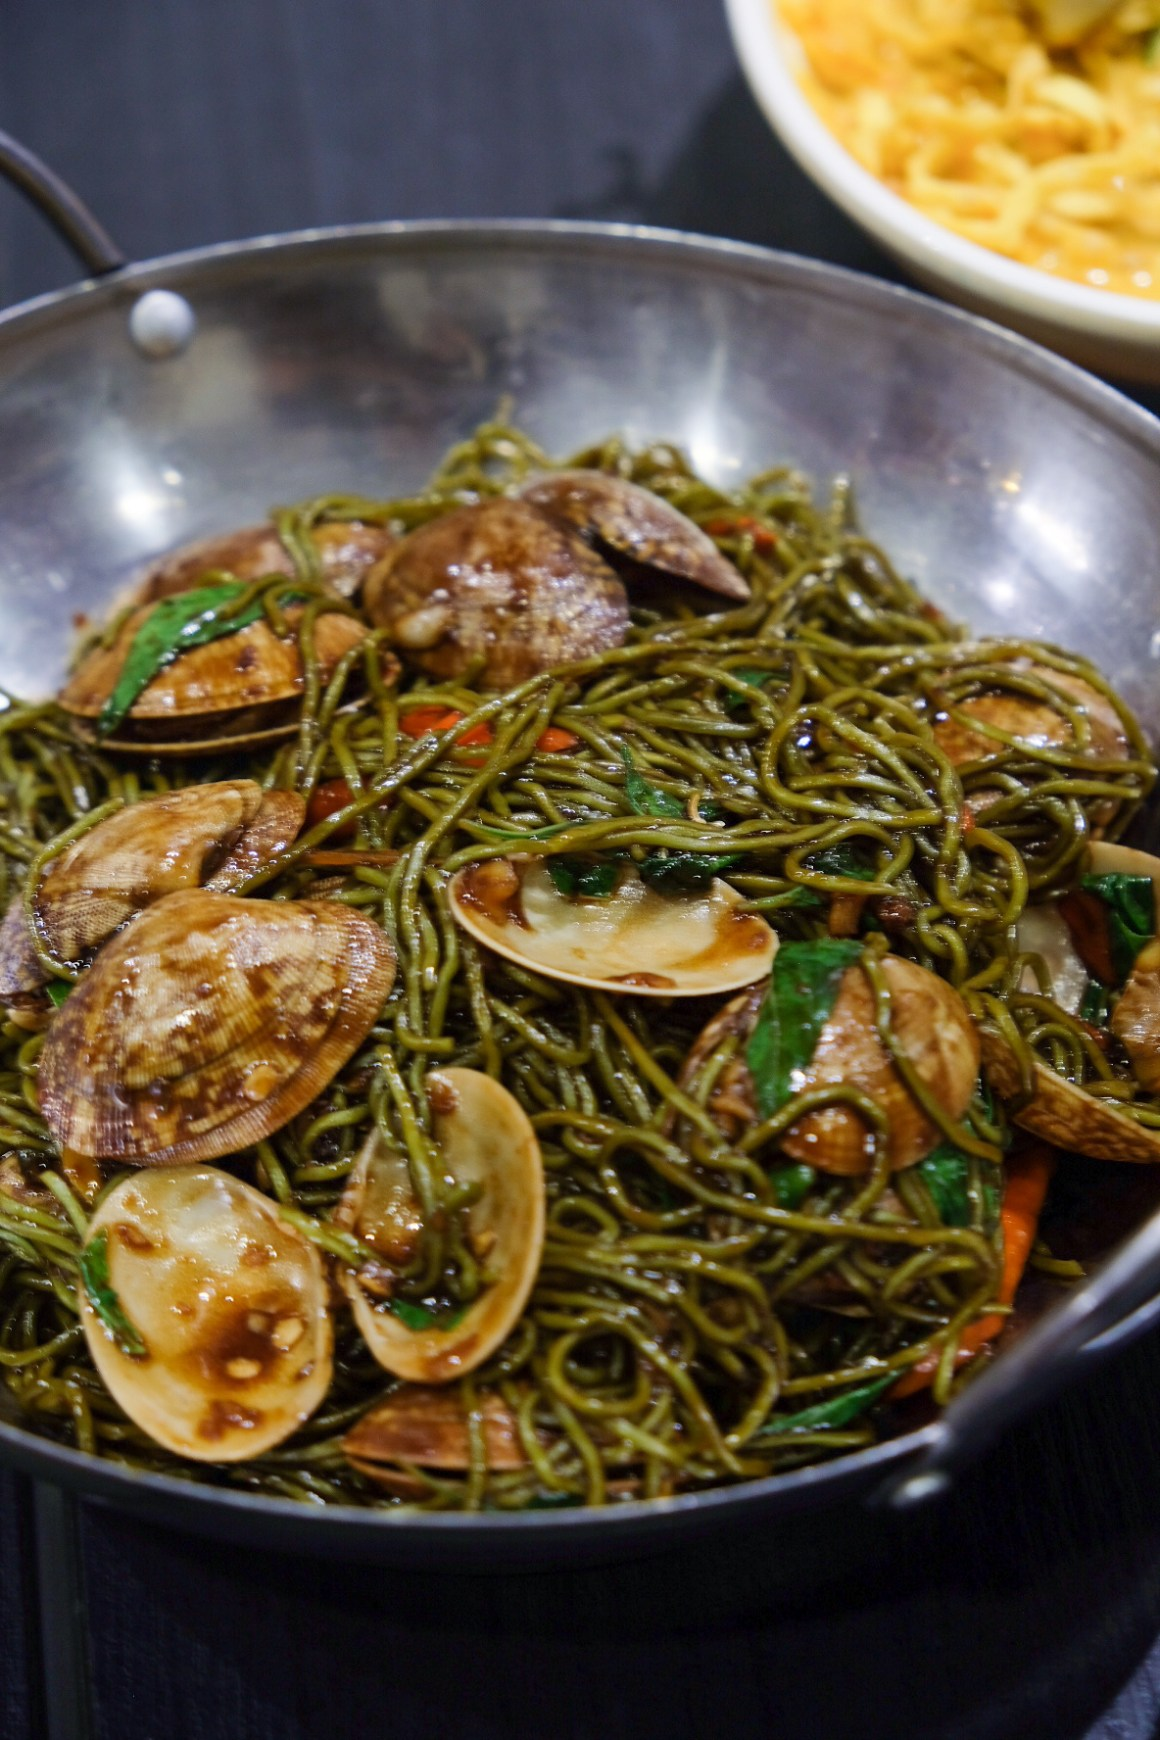 Signature Jade Noodles with Flower Clams